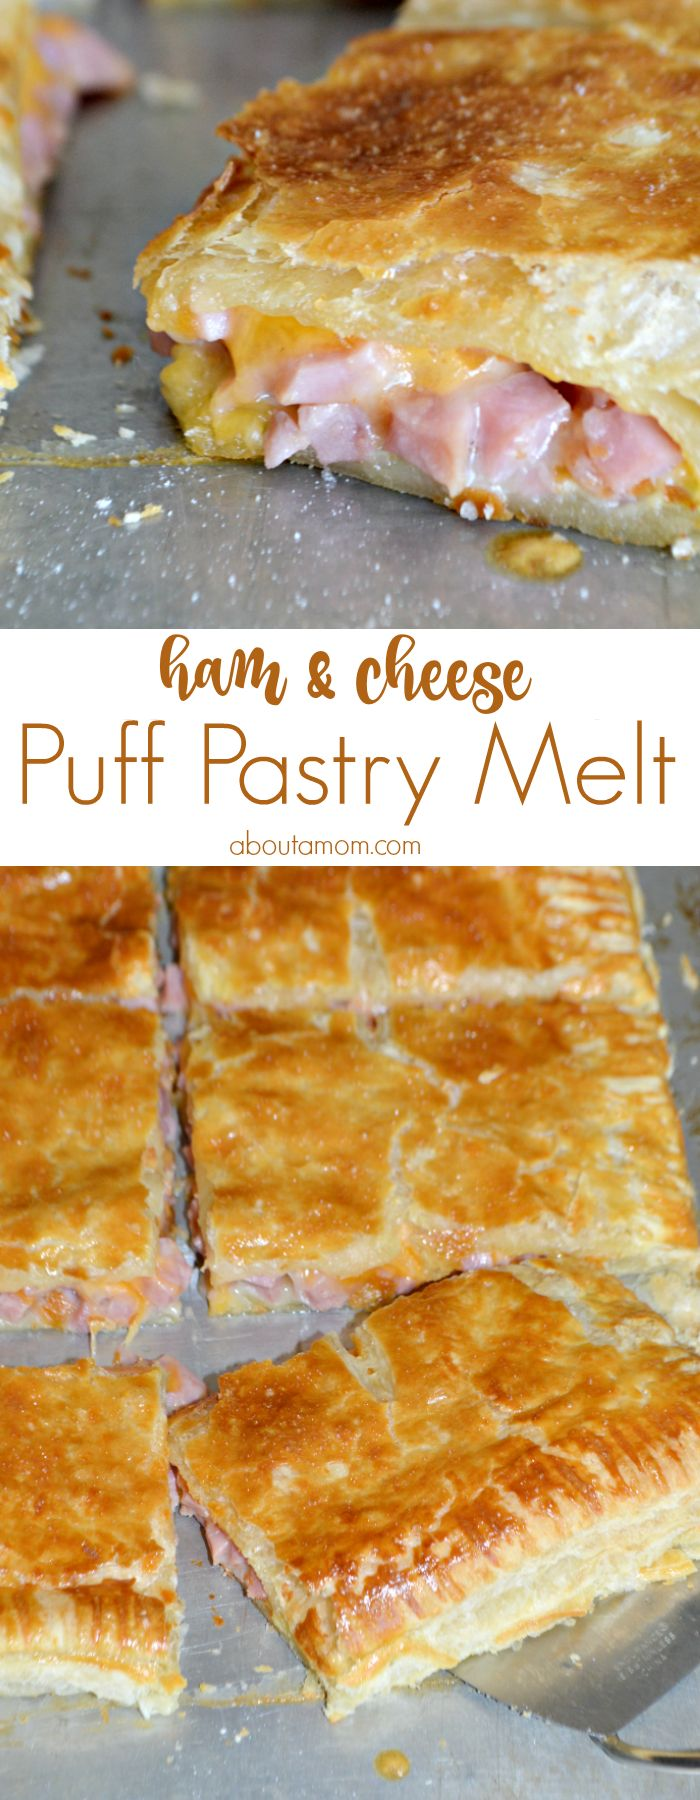 Delicious ham and cheese melted between layers of flaky puff pastry. This Ham and Cheese Puff Pastry Melt is the perfect way to use up leftover ham.